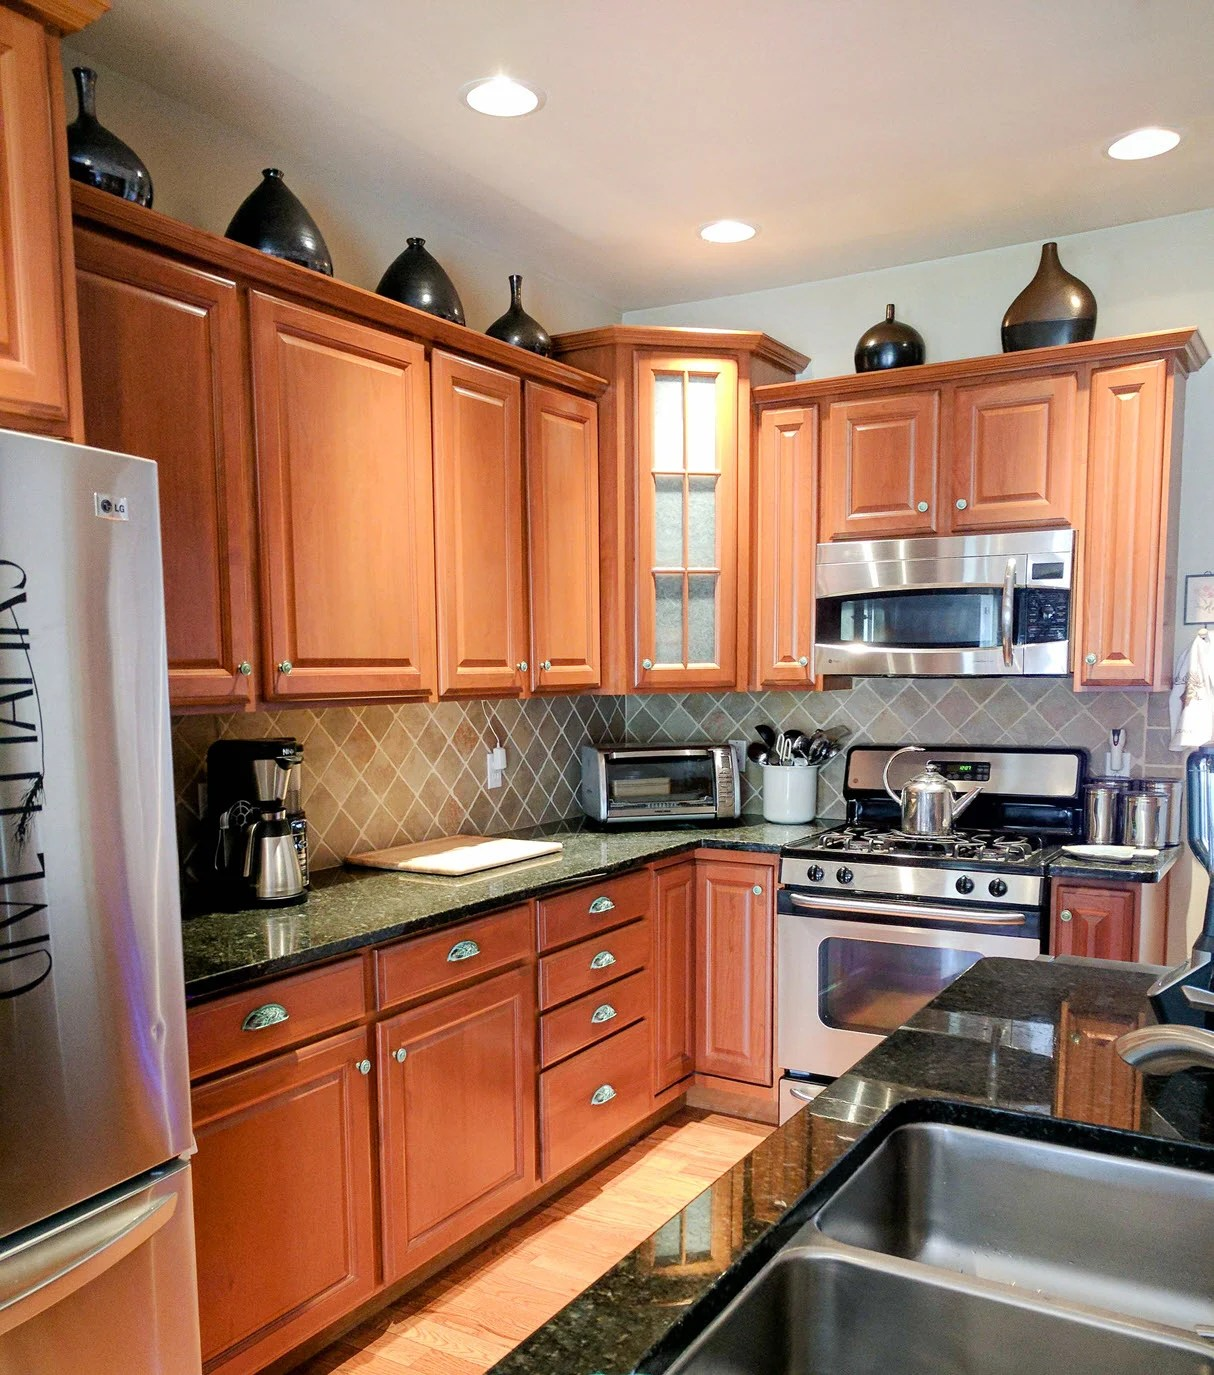 Handles And Knobs For Kitchen Cabinets How To Beautify Your Kitchen Cabinets With New Hardware